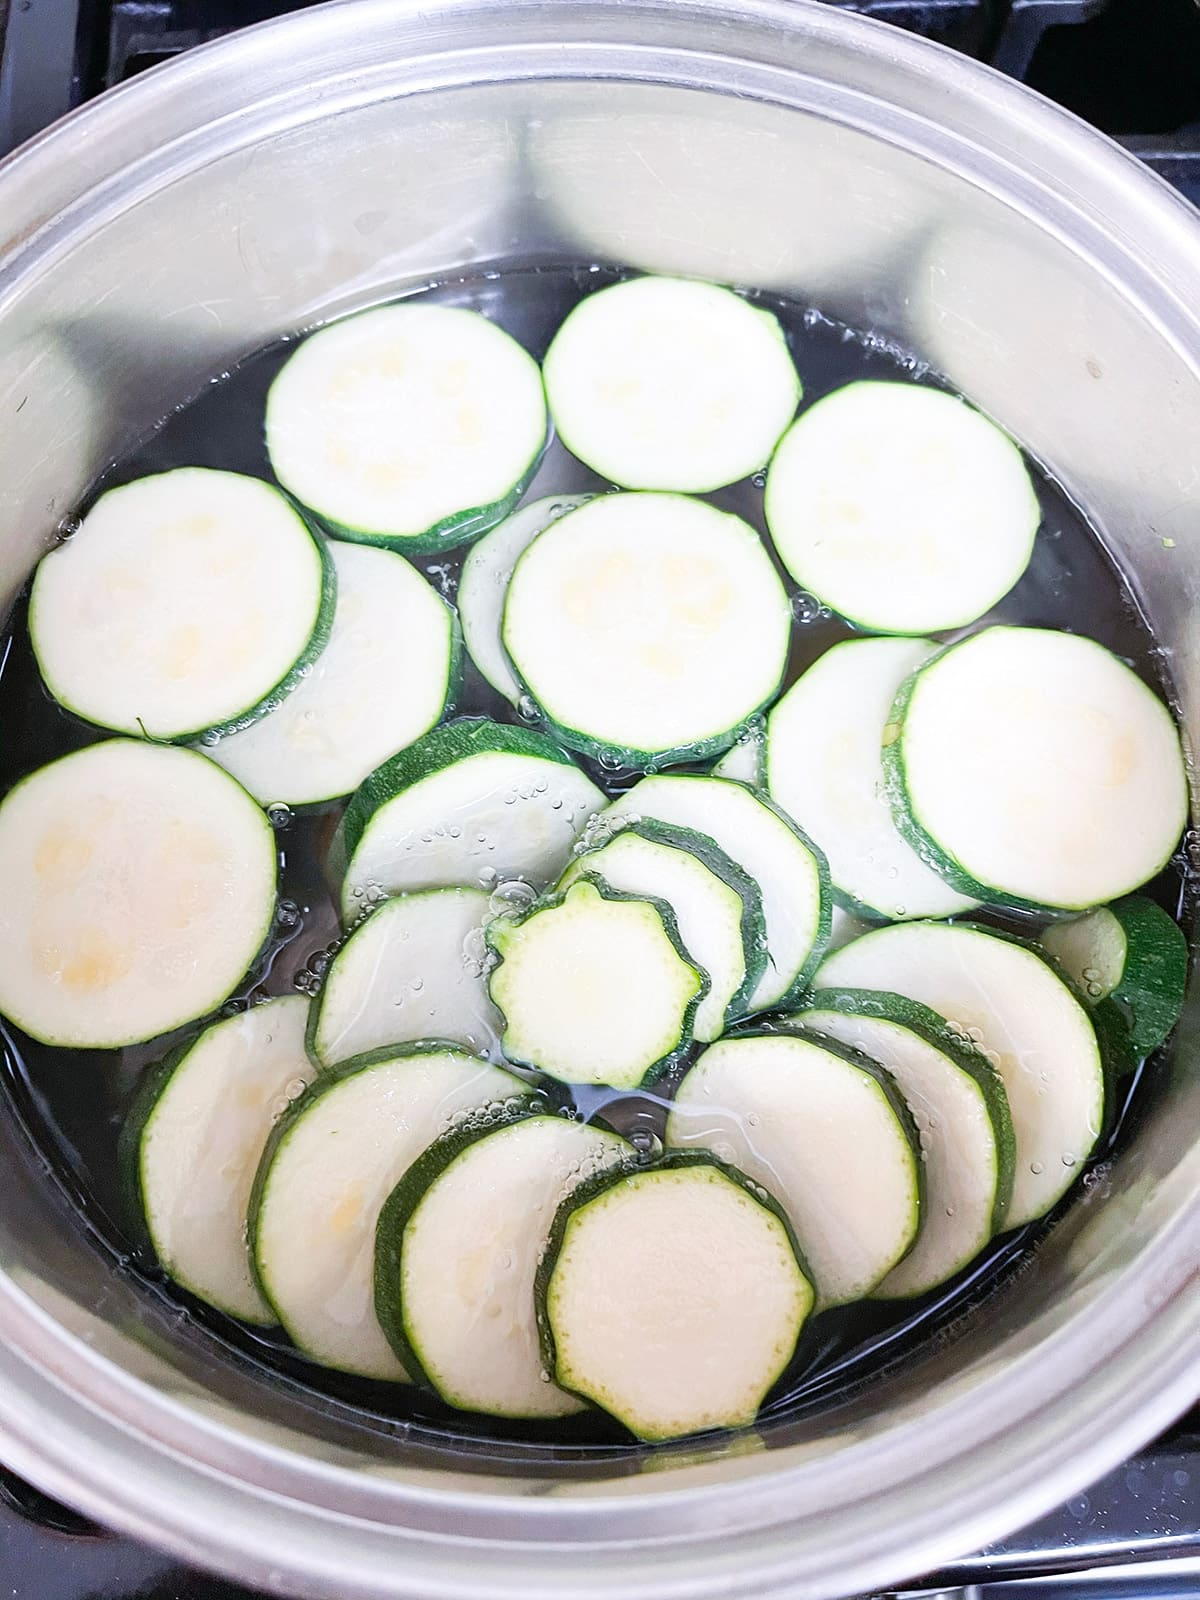 blanching zucchini slices in boiling water